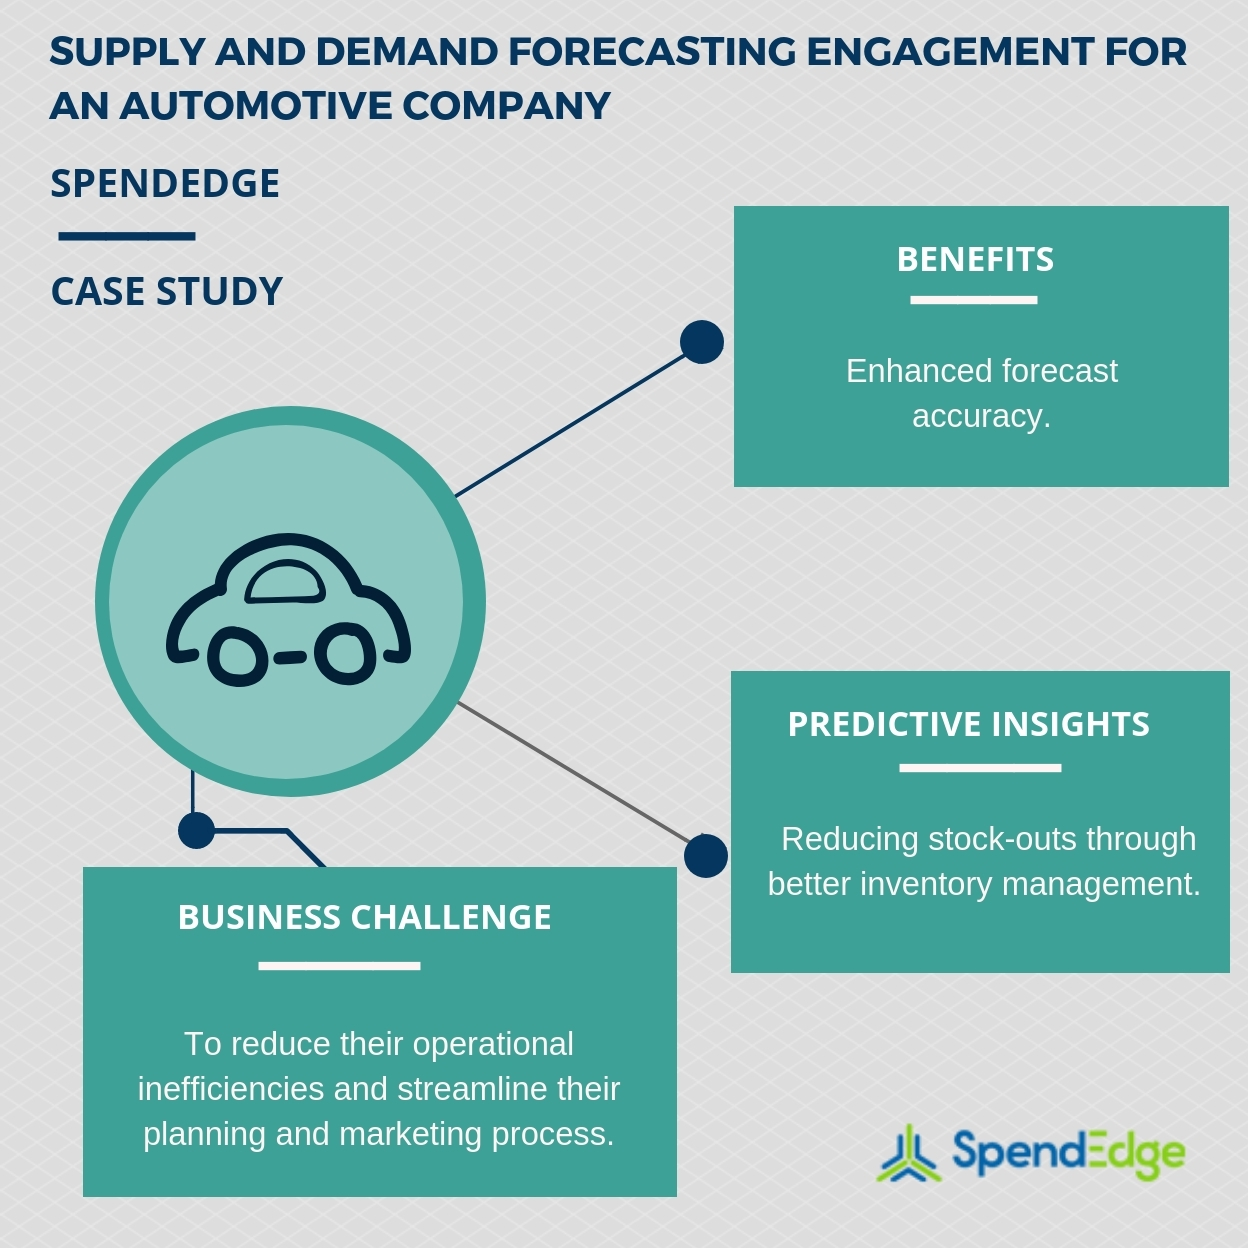 hight resolution of supply and demand forecasting engagement optimizing cash flow by efficiently managing production costs for companies a report by spendedge business